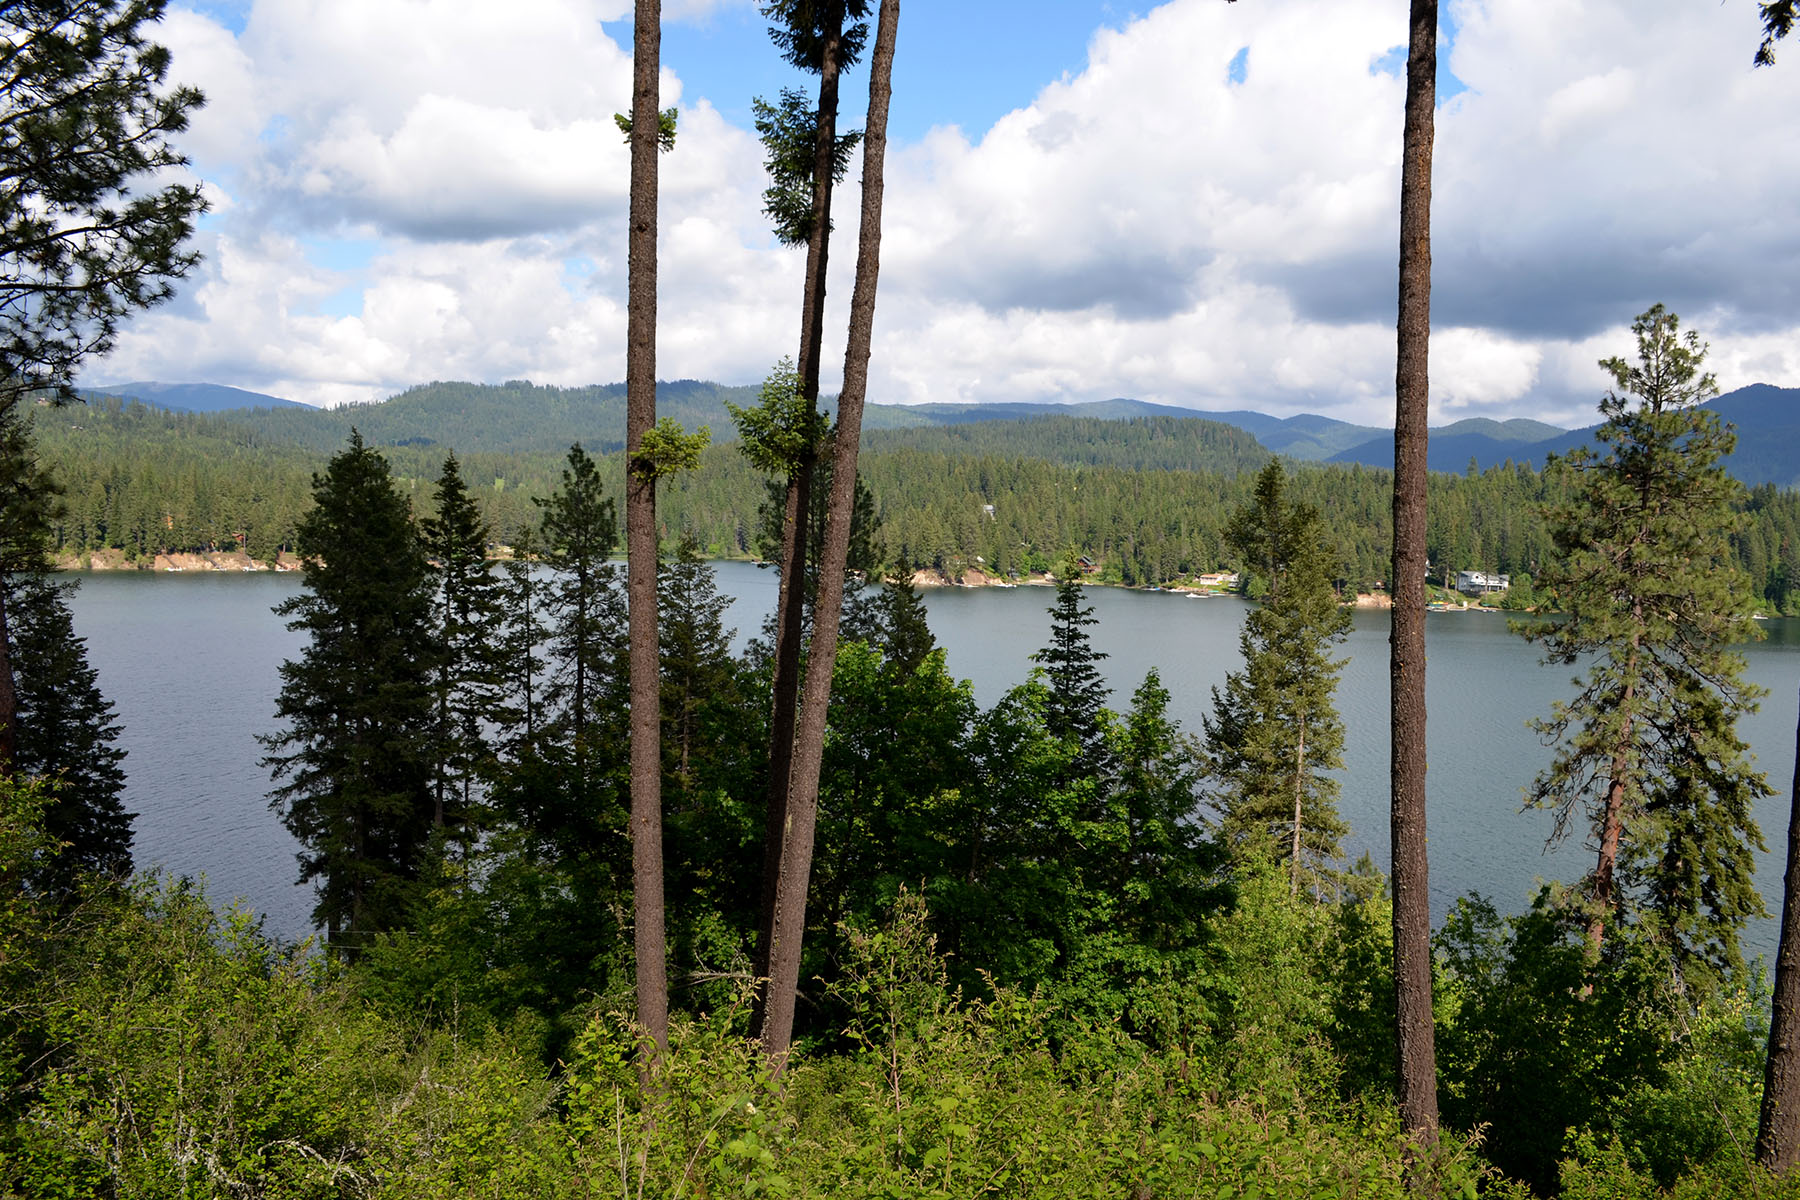 Land for Sale at Taylors Terrace View Lot NNA N McCormack Rd Hayden, Idaho, 83835 United States